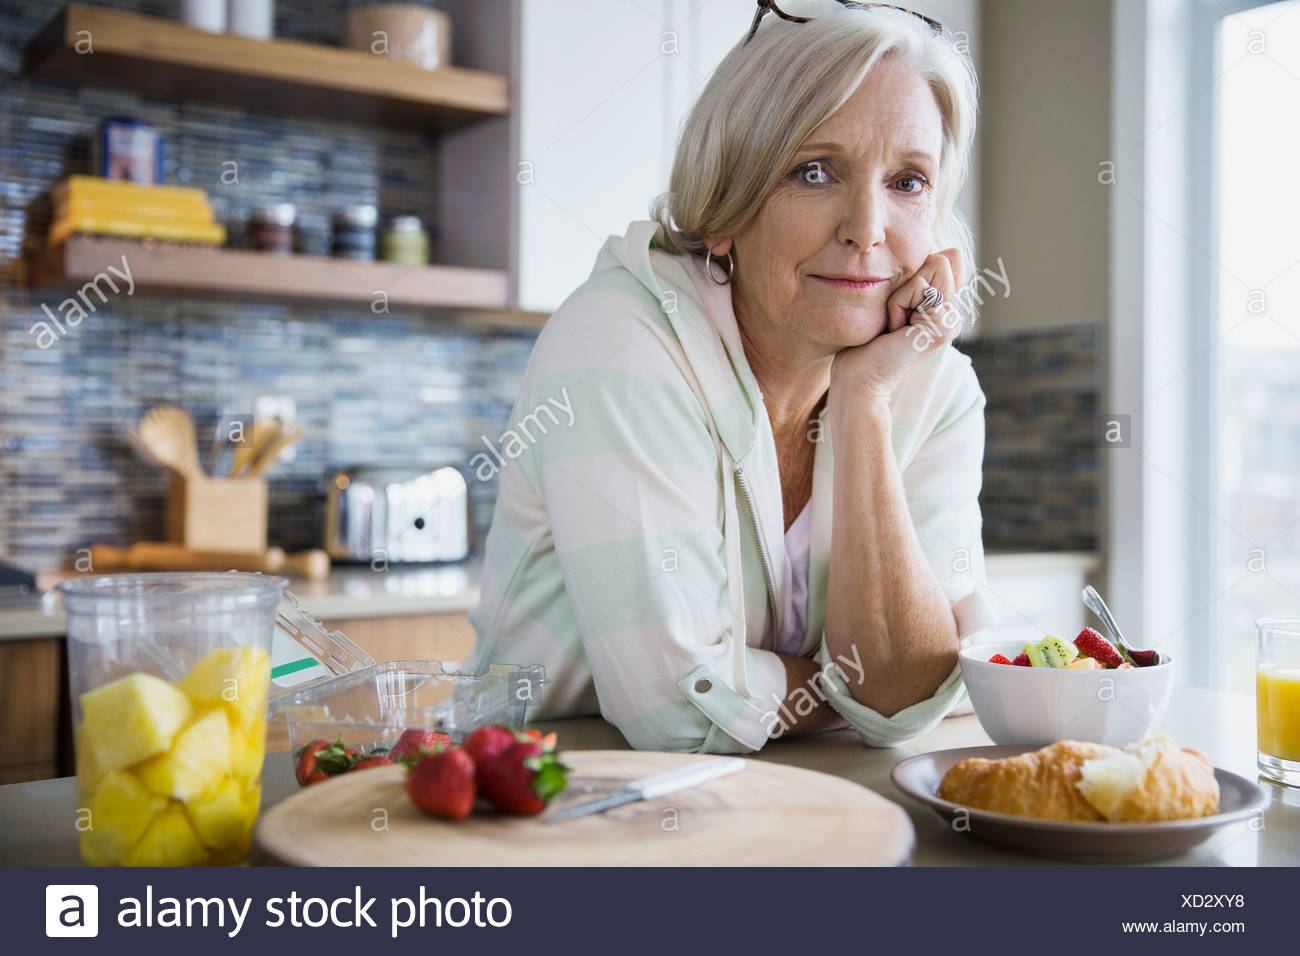 Portrait of woman eating breakfast in kitchen Photo Stock